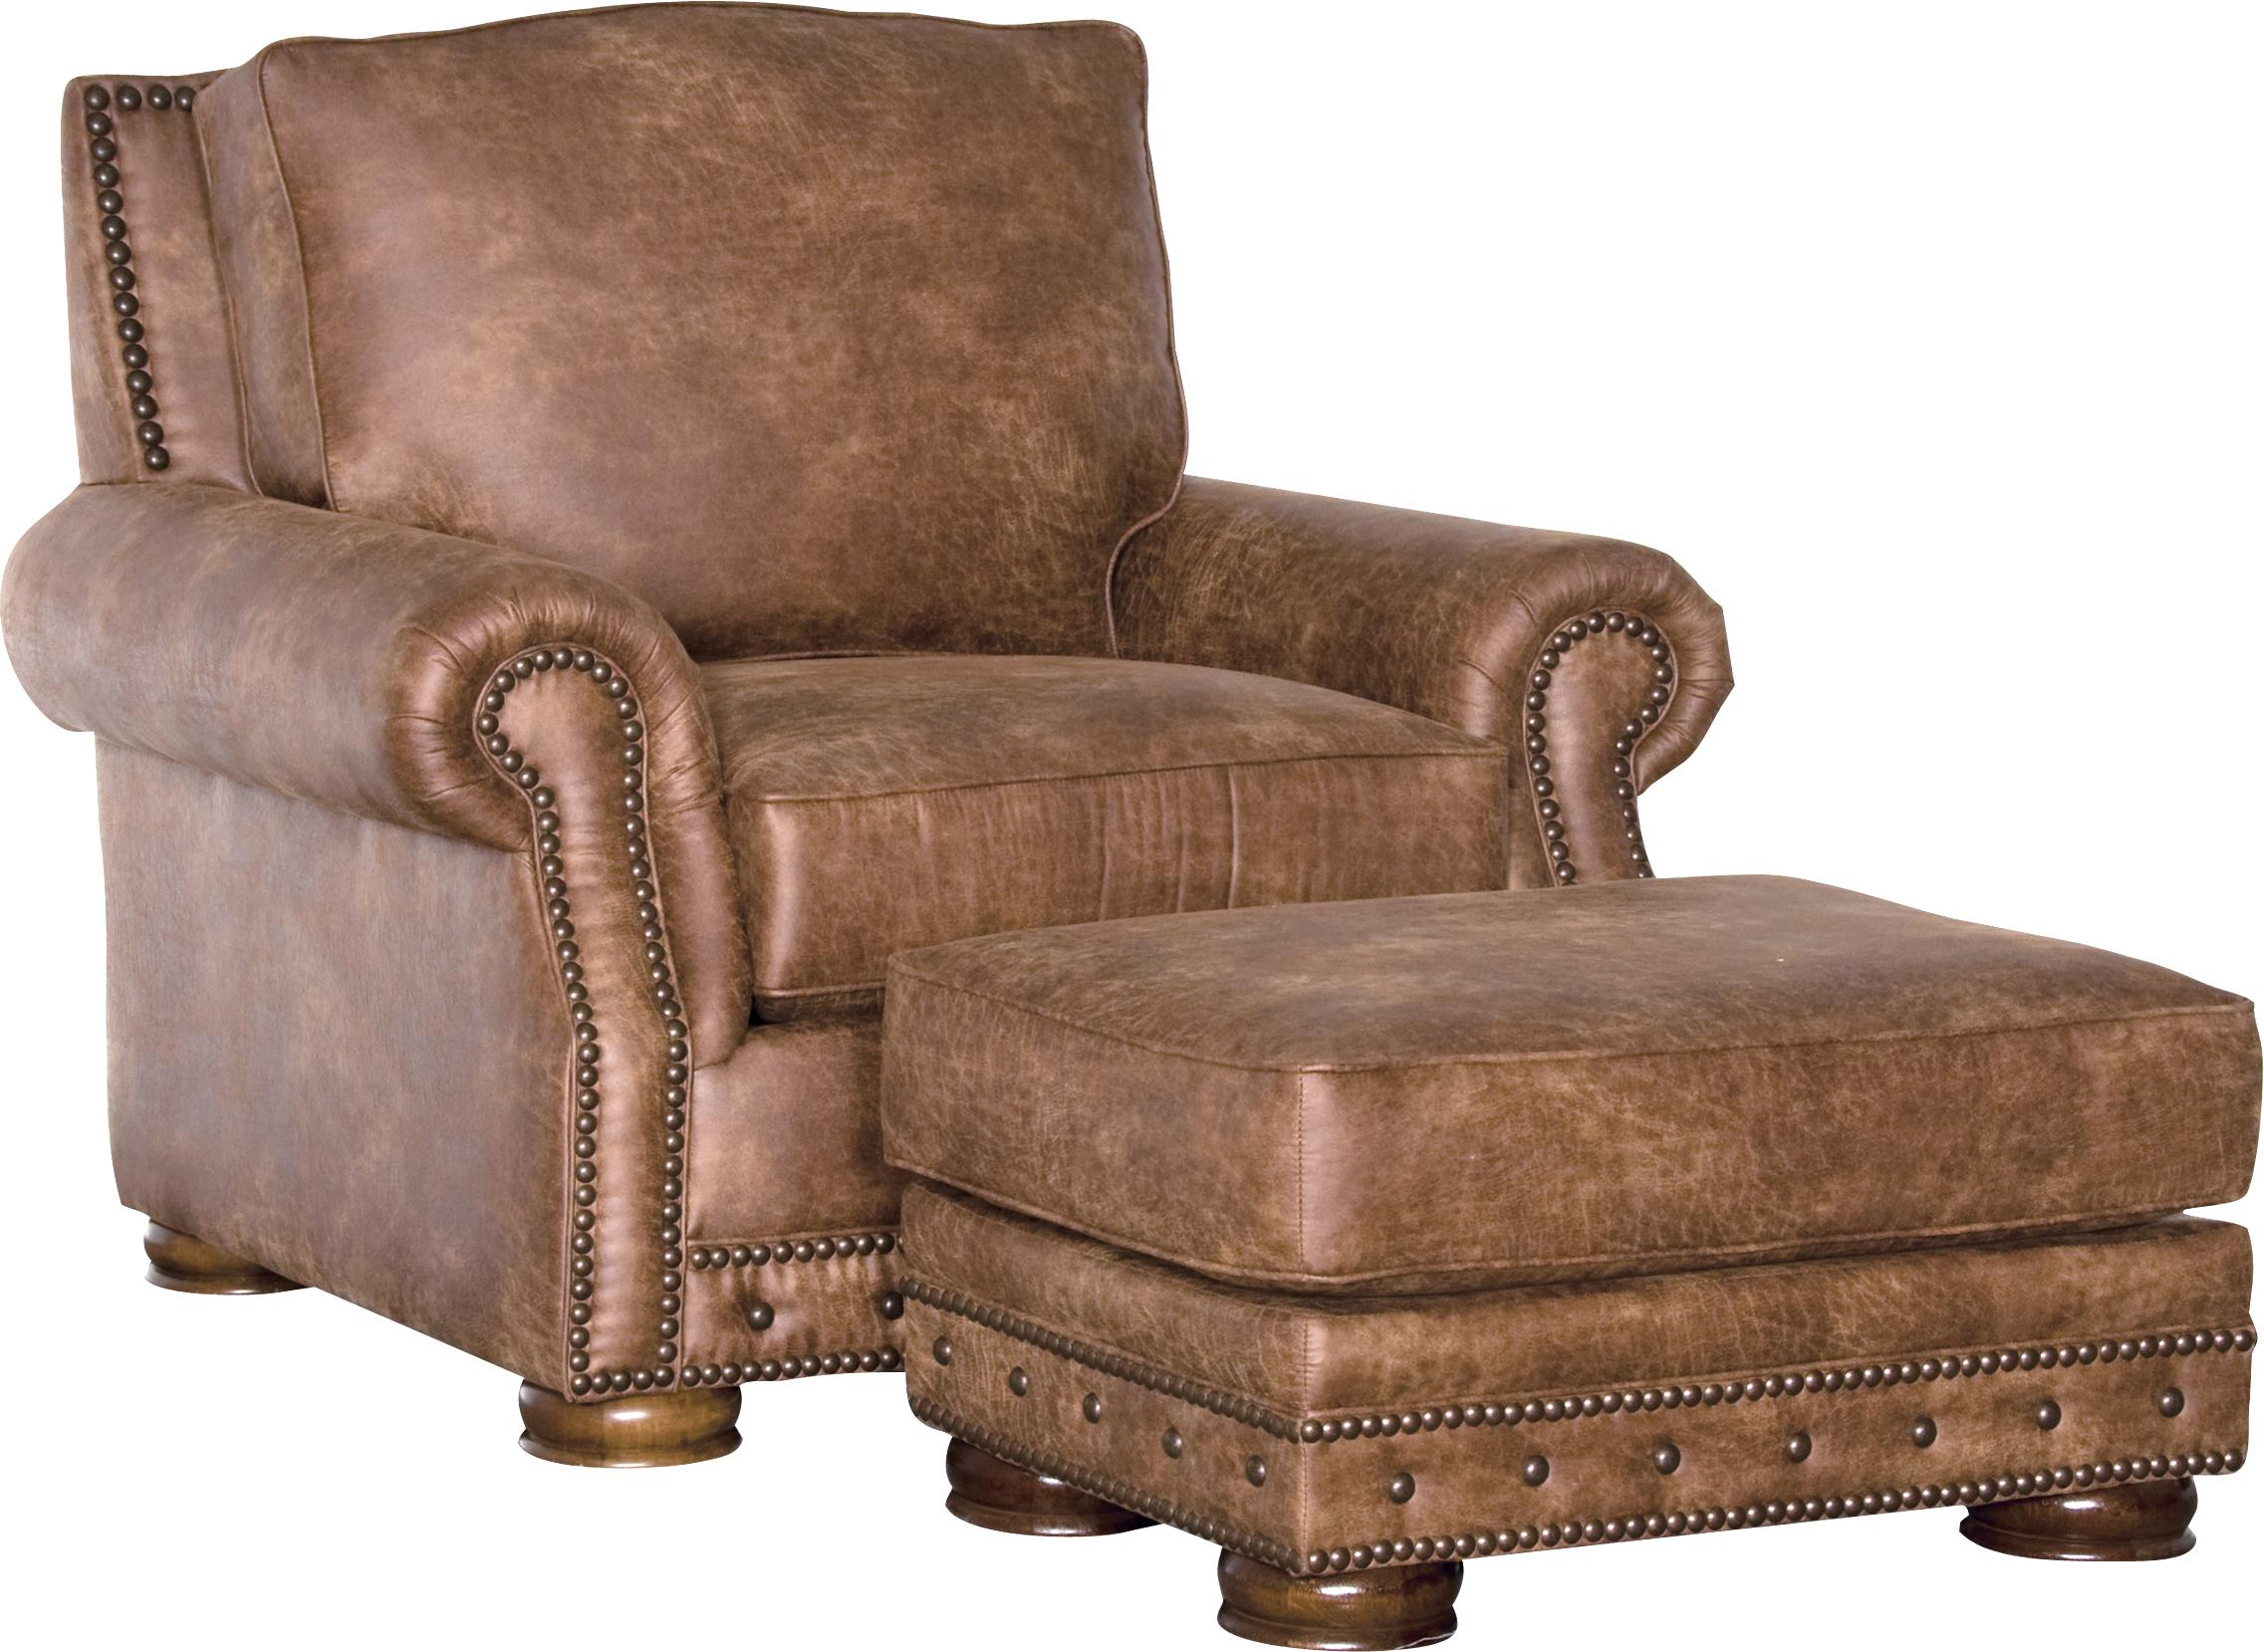 2900 Traditional Chair by Mayo at Story & Lee Furniture